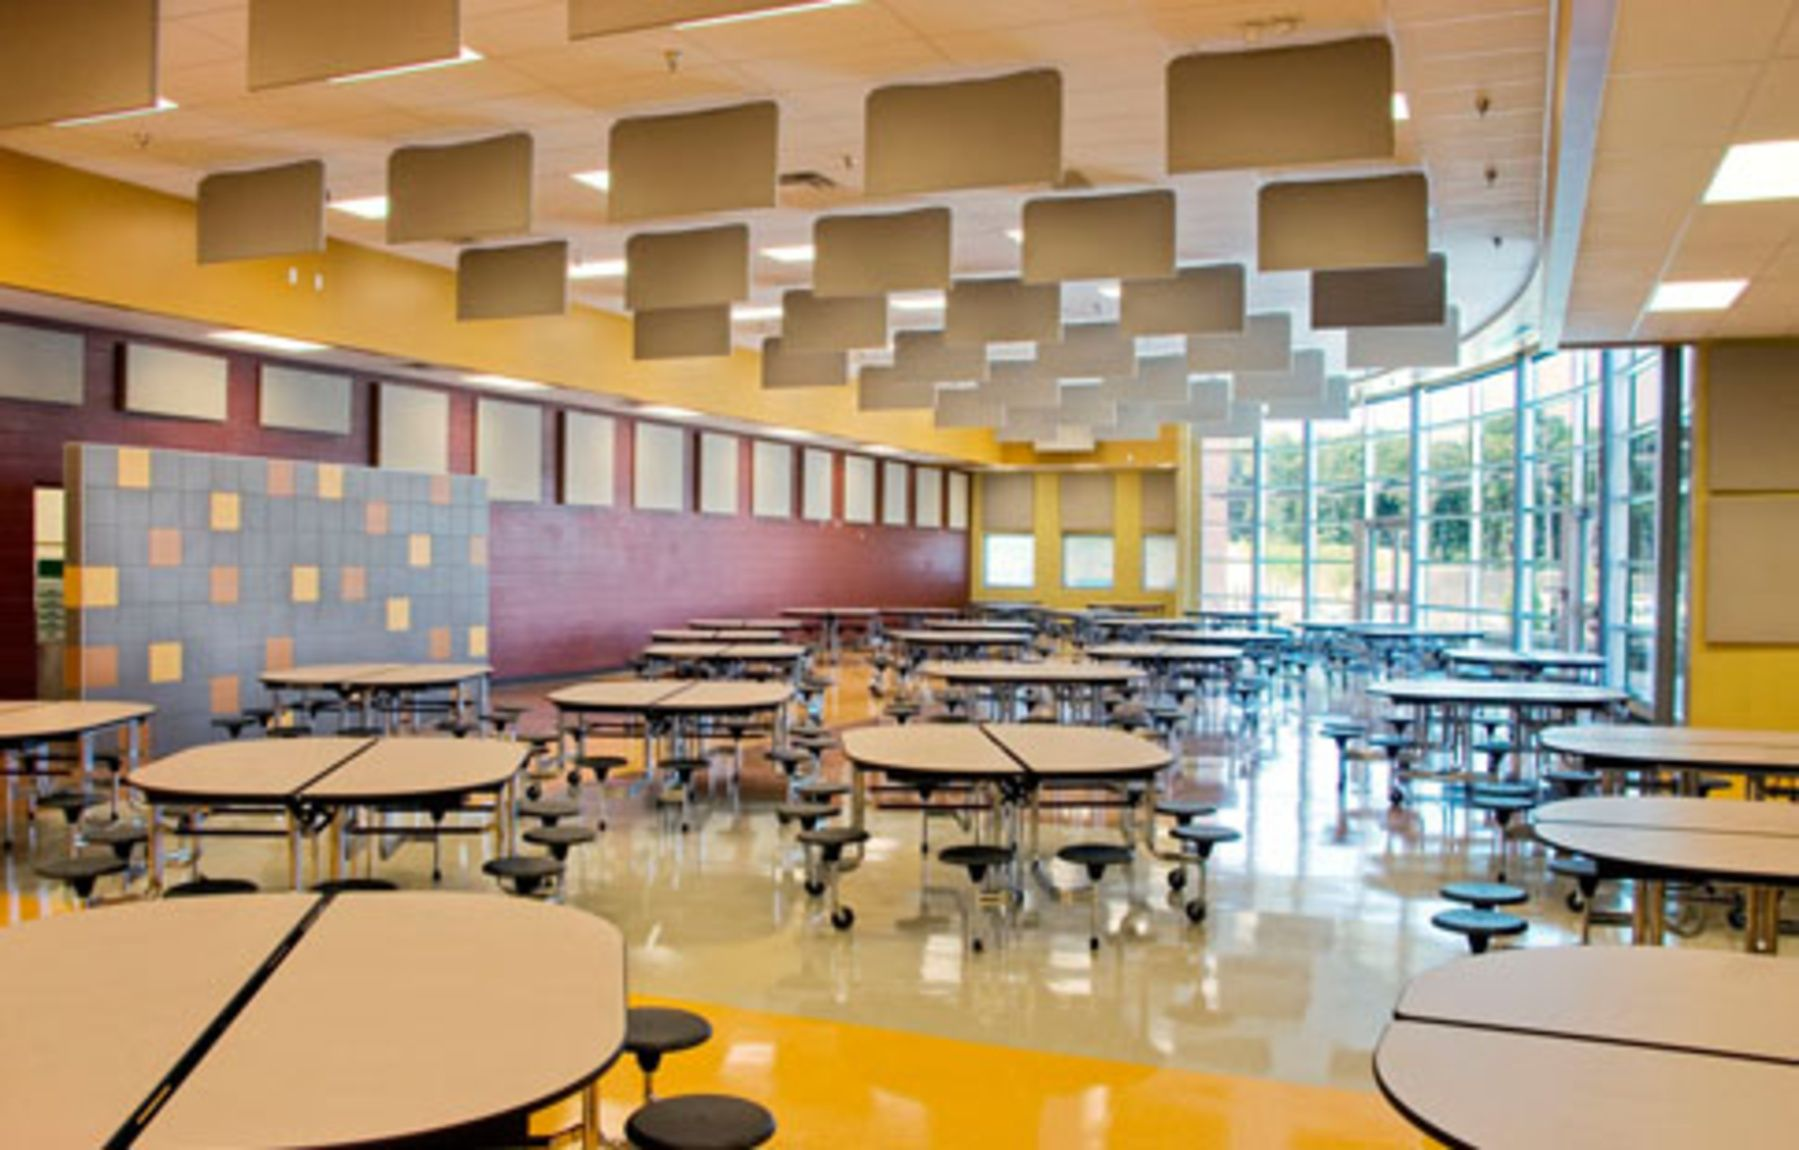 cafeteria observation Classroom observation requests for the fall semester begins august 13, 2018 requests are taken on a first-come, first-served basis with a limit of 25 observers per semester observation requests are now closed for the fall 2018 semester.